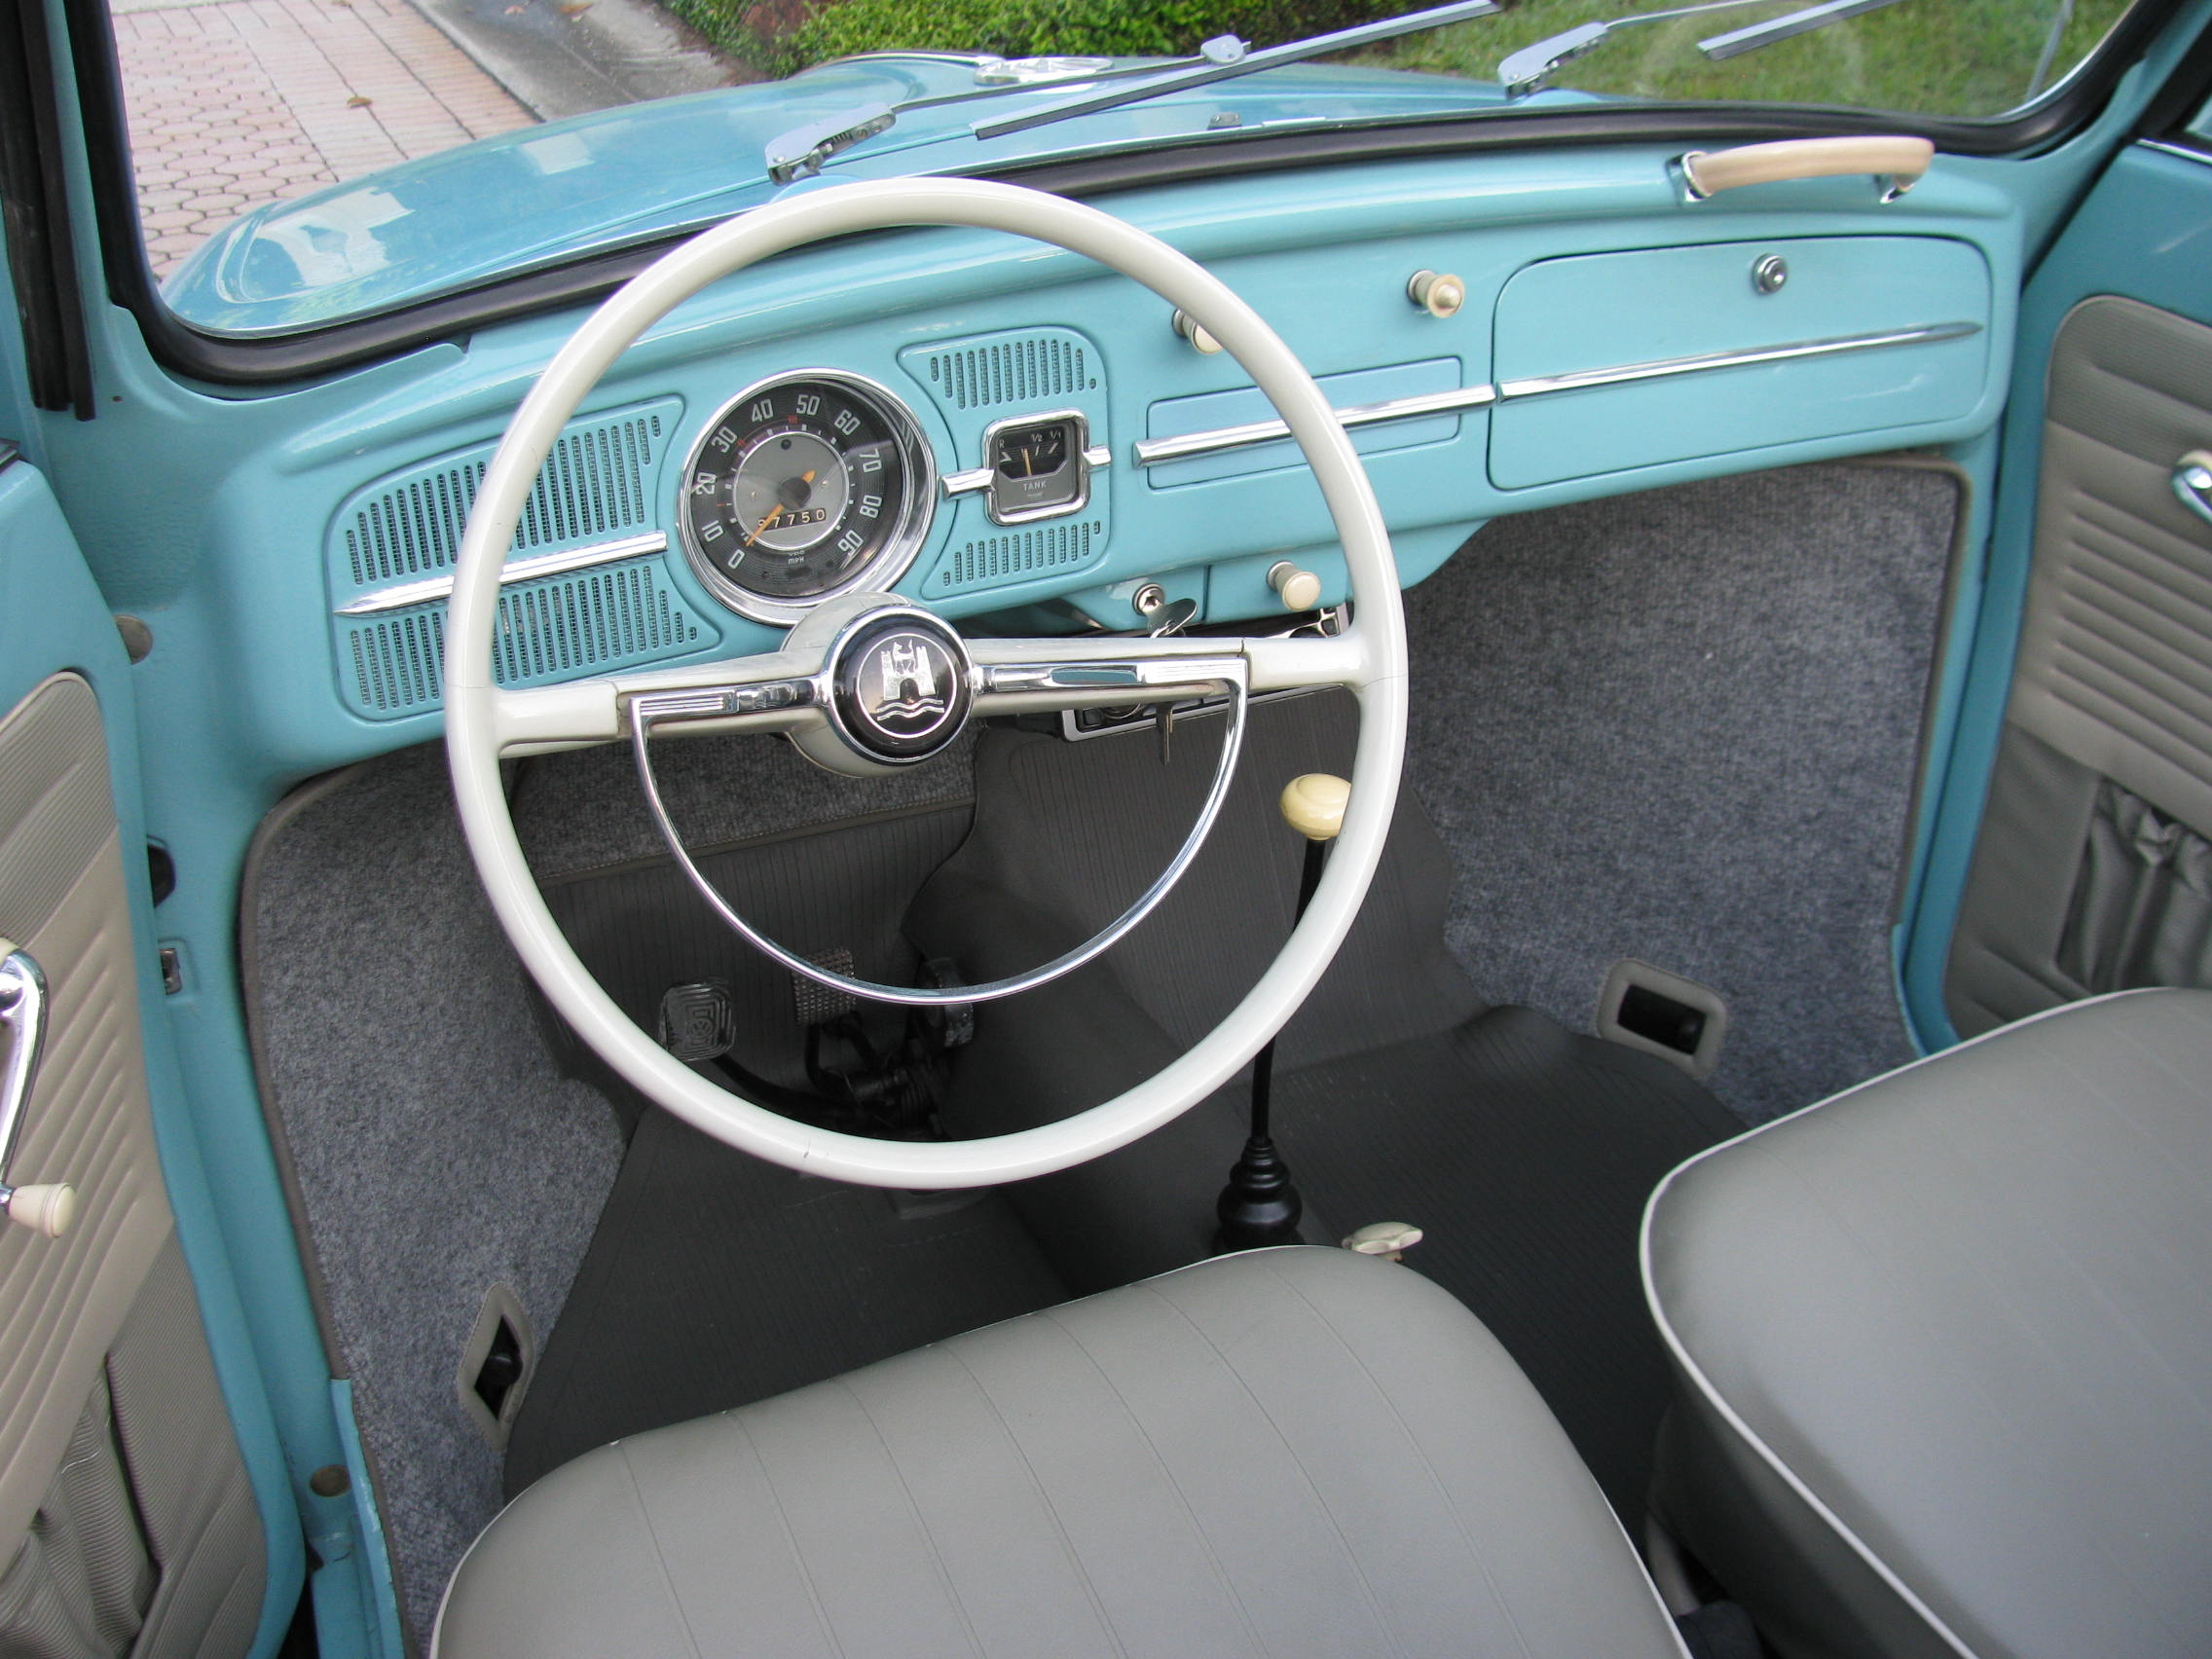 Vw Beetle Convertible >> 1963 Volkswagen Beetle Convertible - SOLD! - Vantage ...